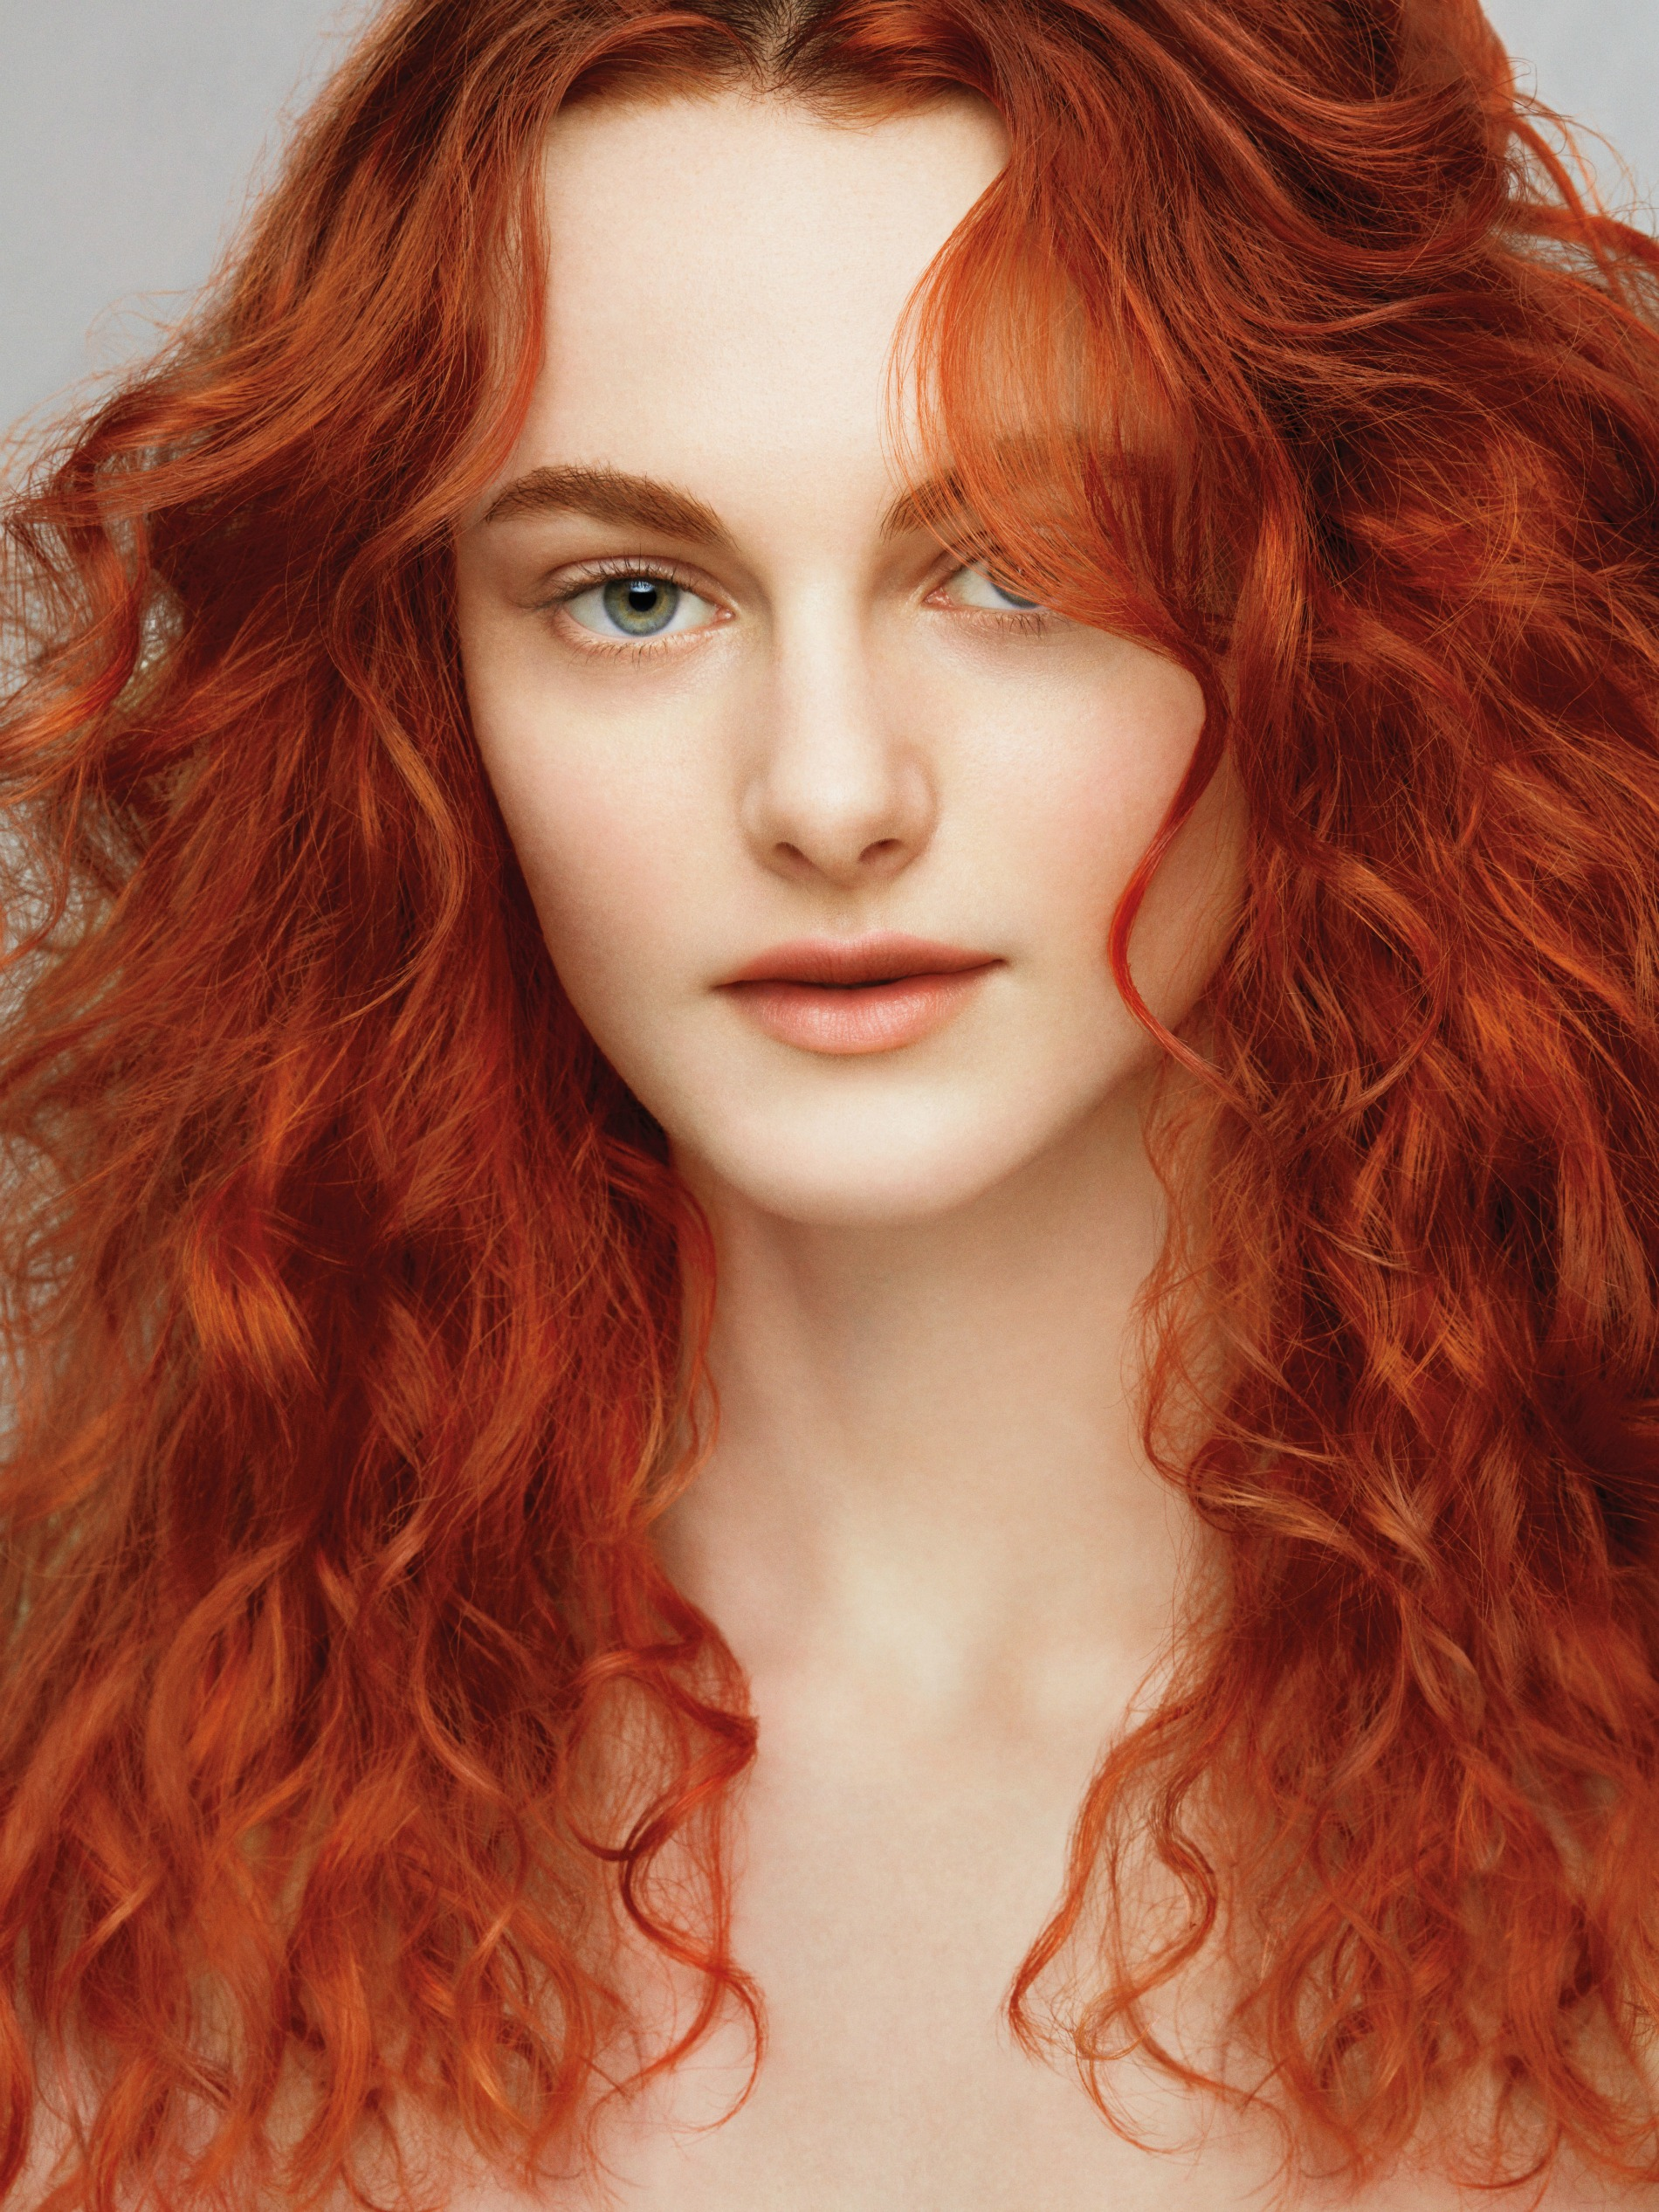 Salon Hair Reecia Salon Located In The Heart Of Whitefish Montana